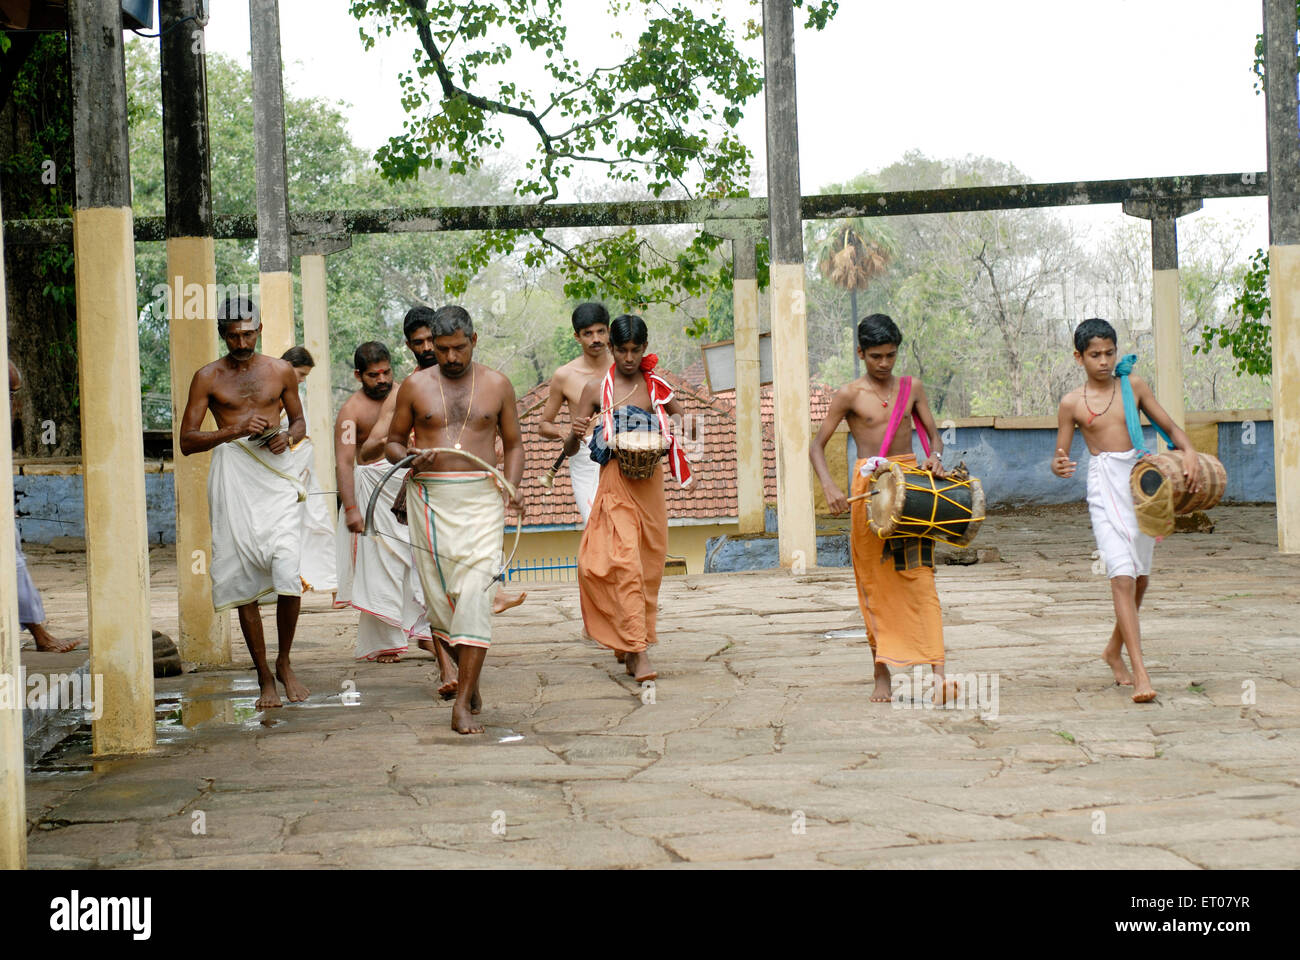 Sacred pooja considered as seeveli in temple ; Thiruvilwamala ; Kerala ; India - Stock Image